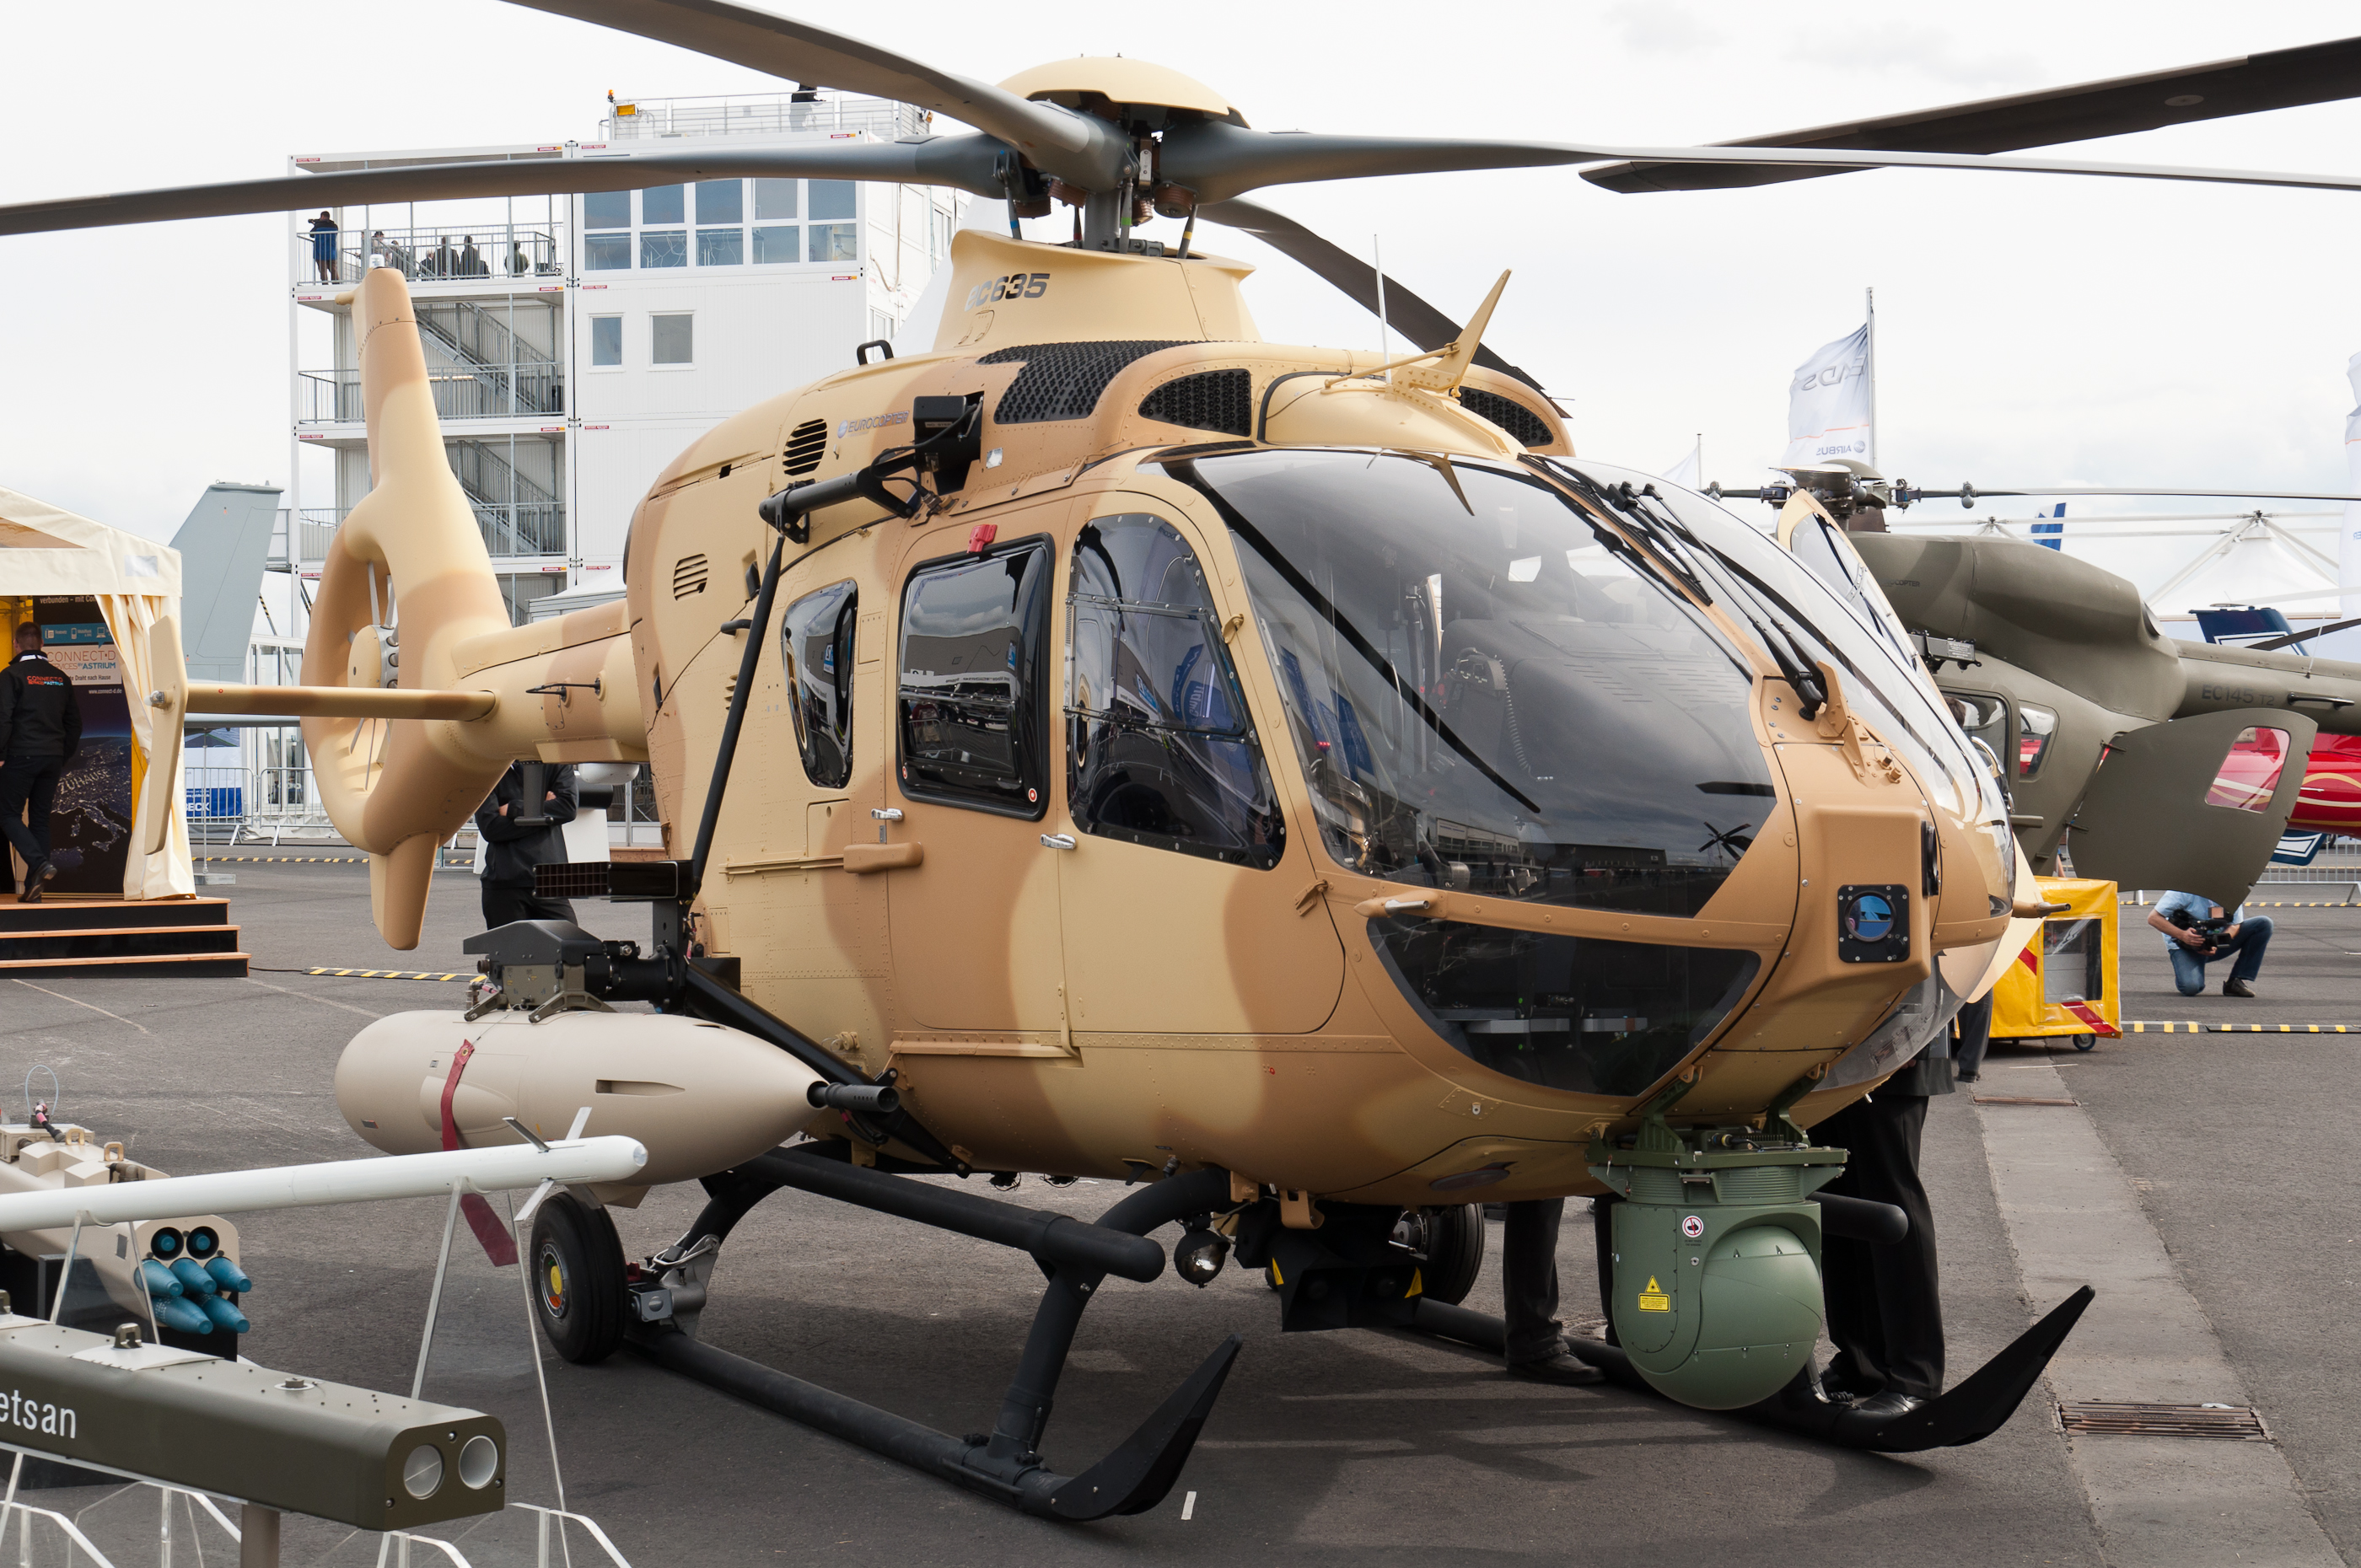 surplus military helicopters with Eurocopter Ec 135635 02 on Armas De Belgica Armas Belgas further Op Lentus in addition Eurocopter Ec 135635 02 furthermore Uh 60 Black Hawk additionally Showthread.